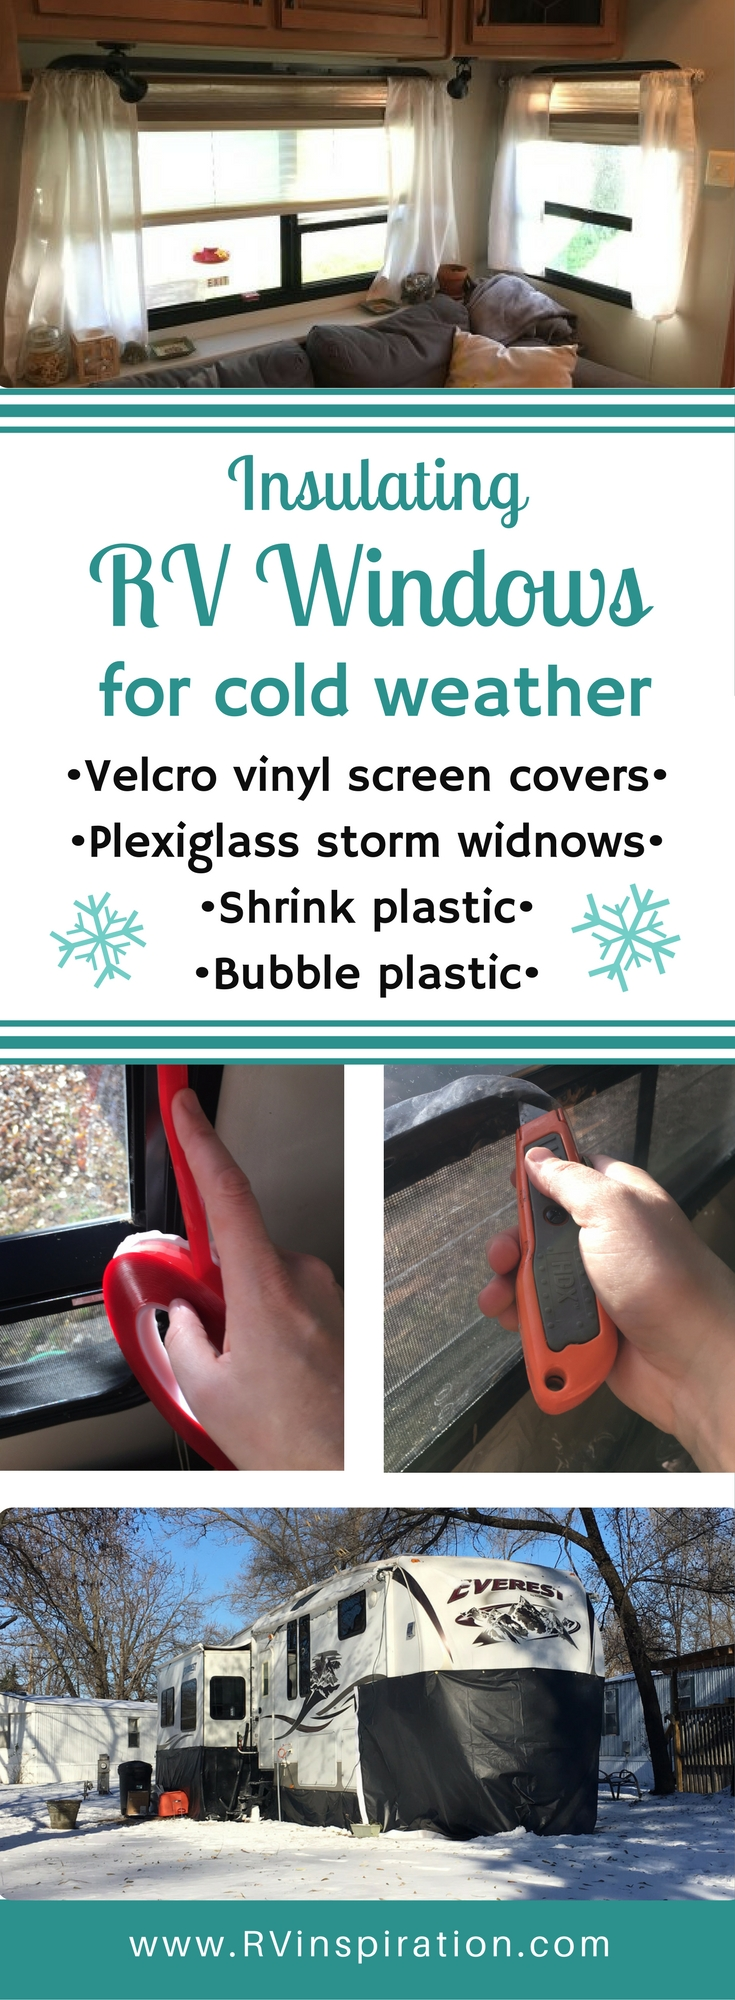 Here's how I made DIY plexiglass storm windows and clear vinyl Velcro screen covers to prepare my RV for cold weather this winter.